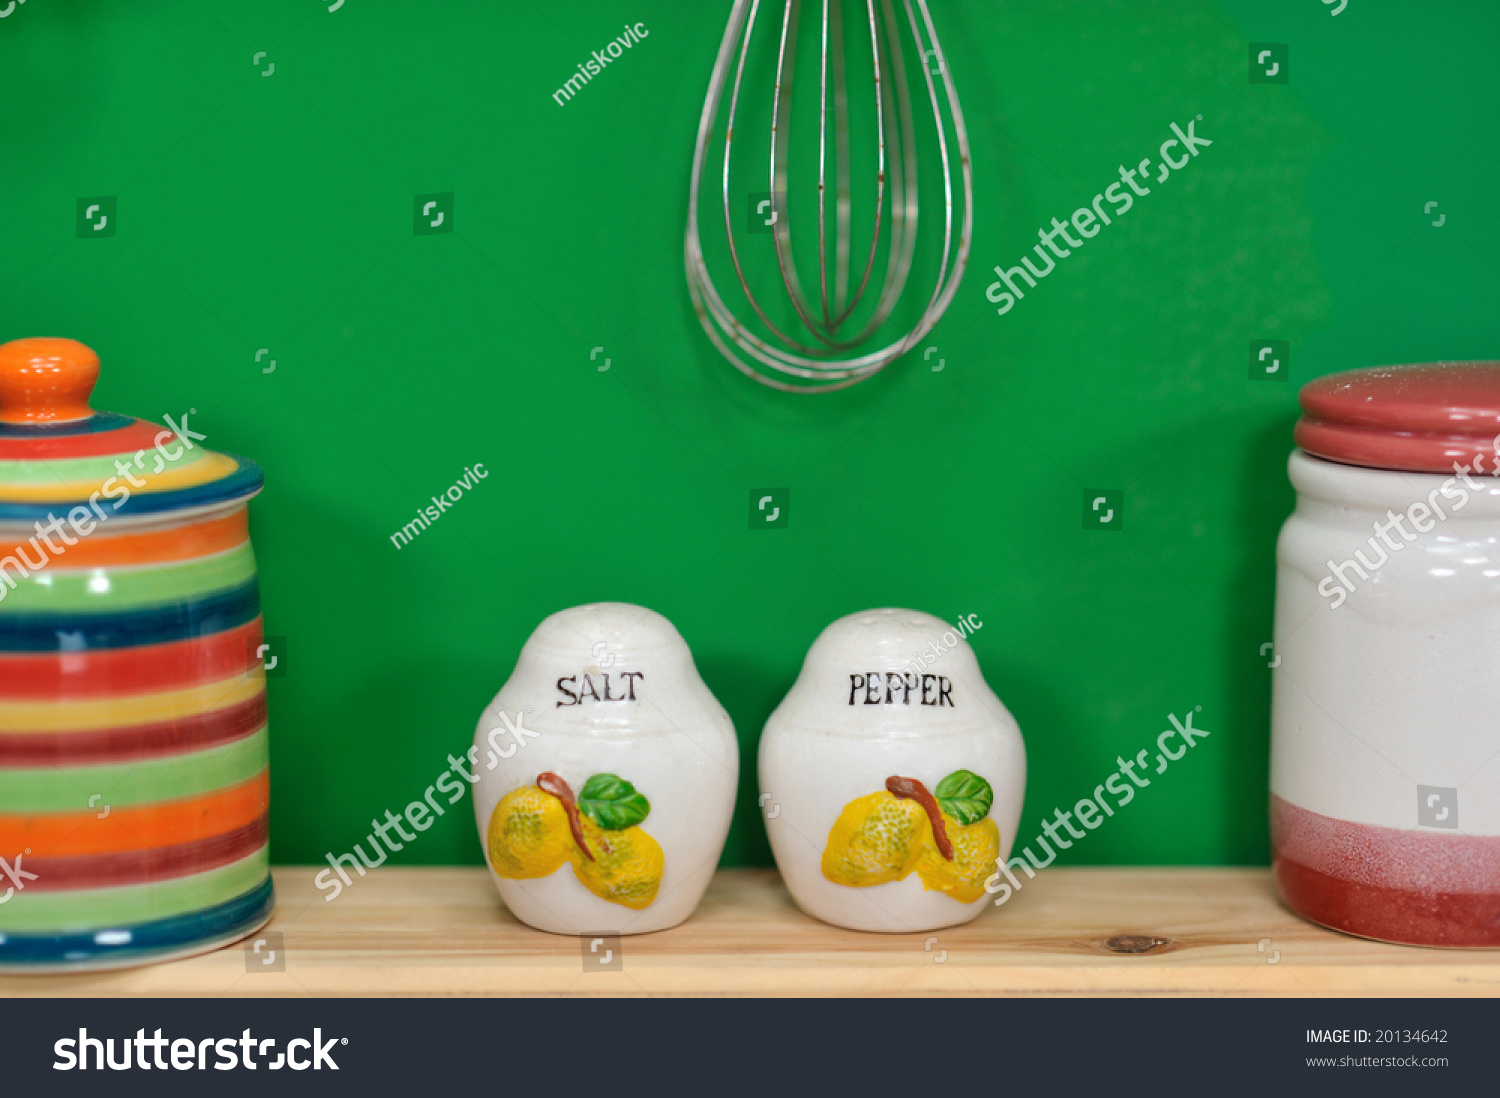 Handmade Salt And Pepper Containers In Front Of A Green